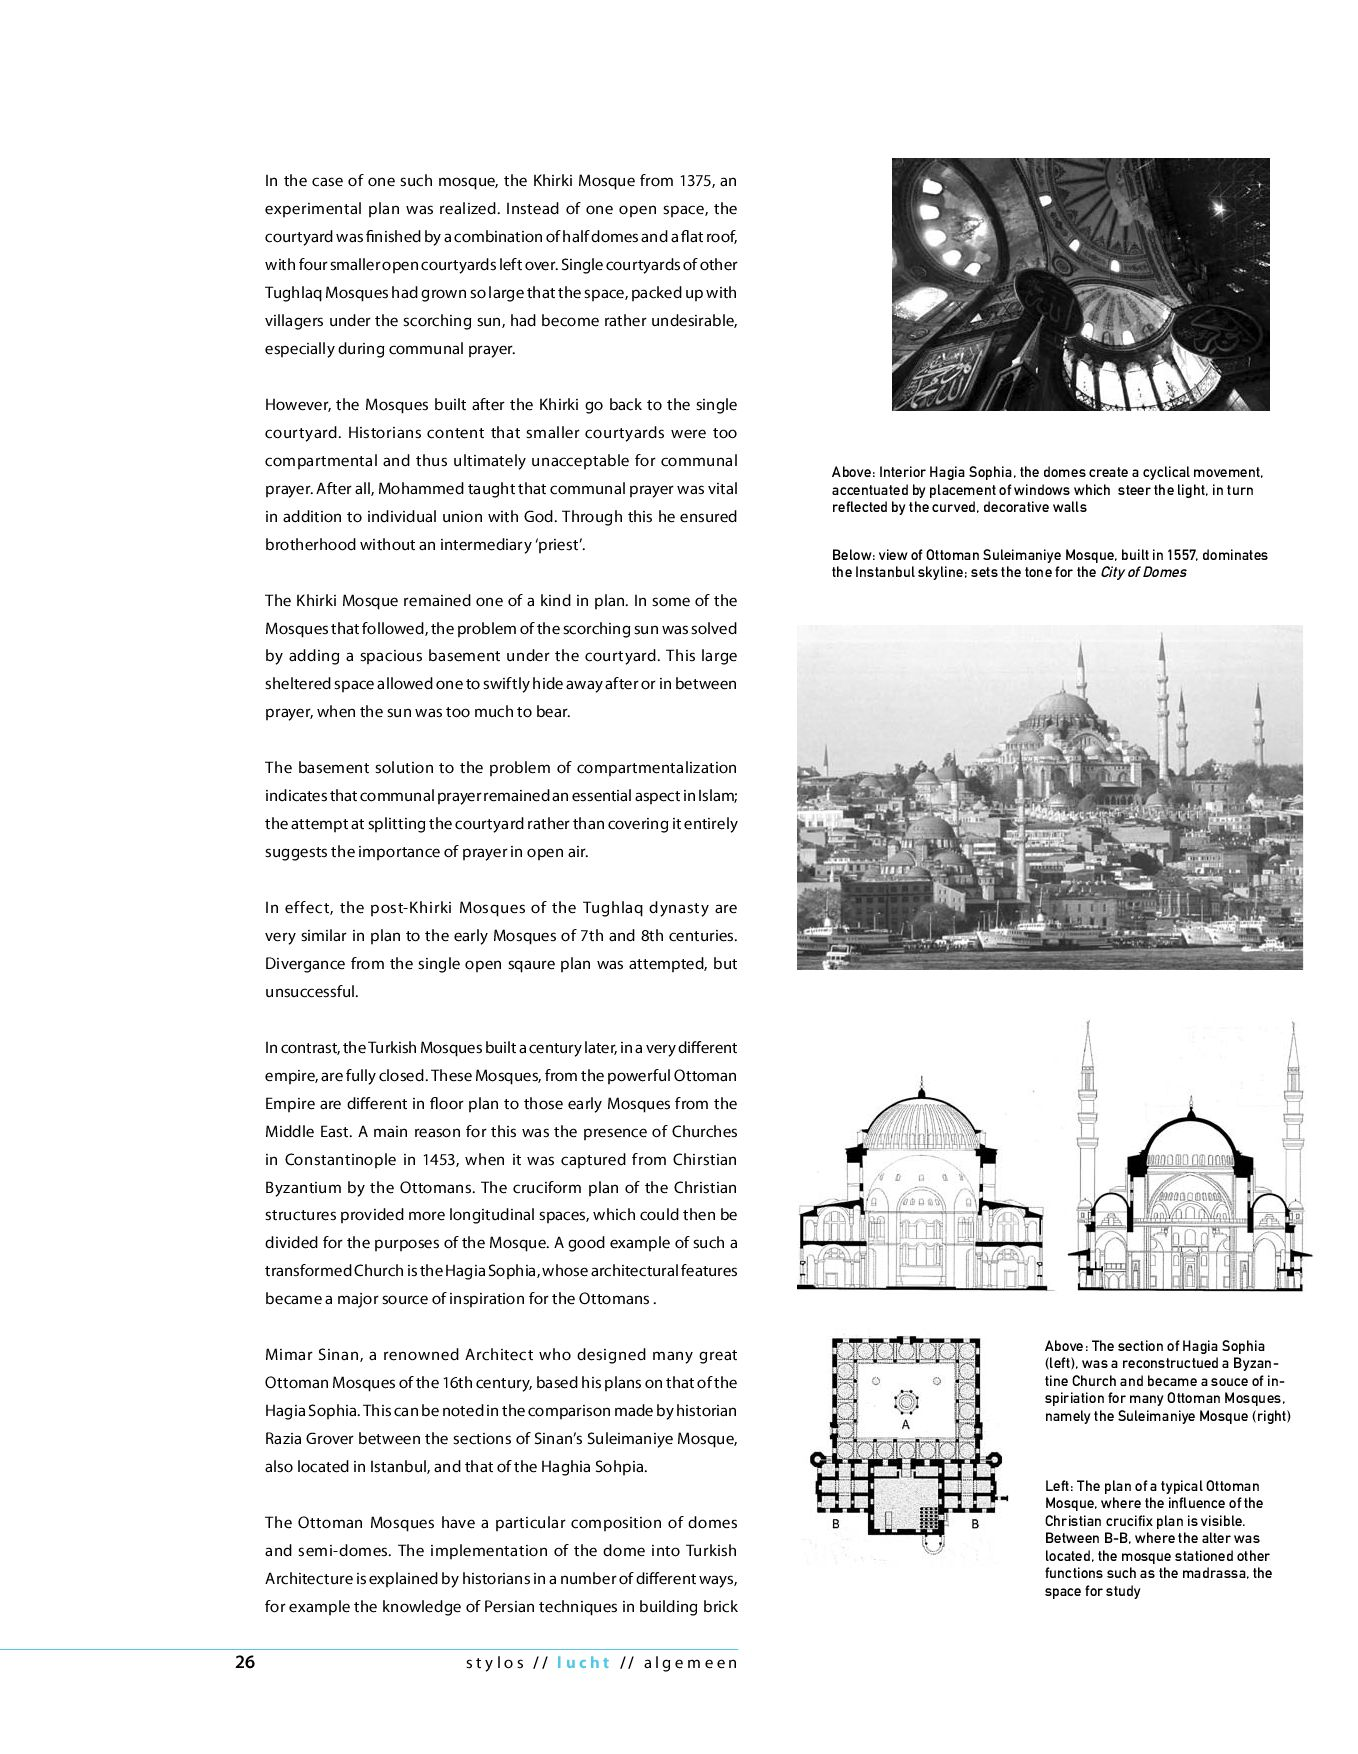 pantheon// 2008 - lucht by Study Association Stylos - issuu